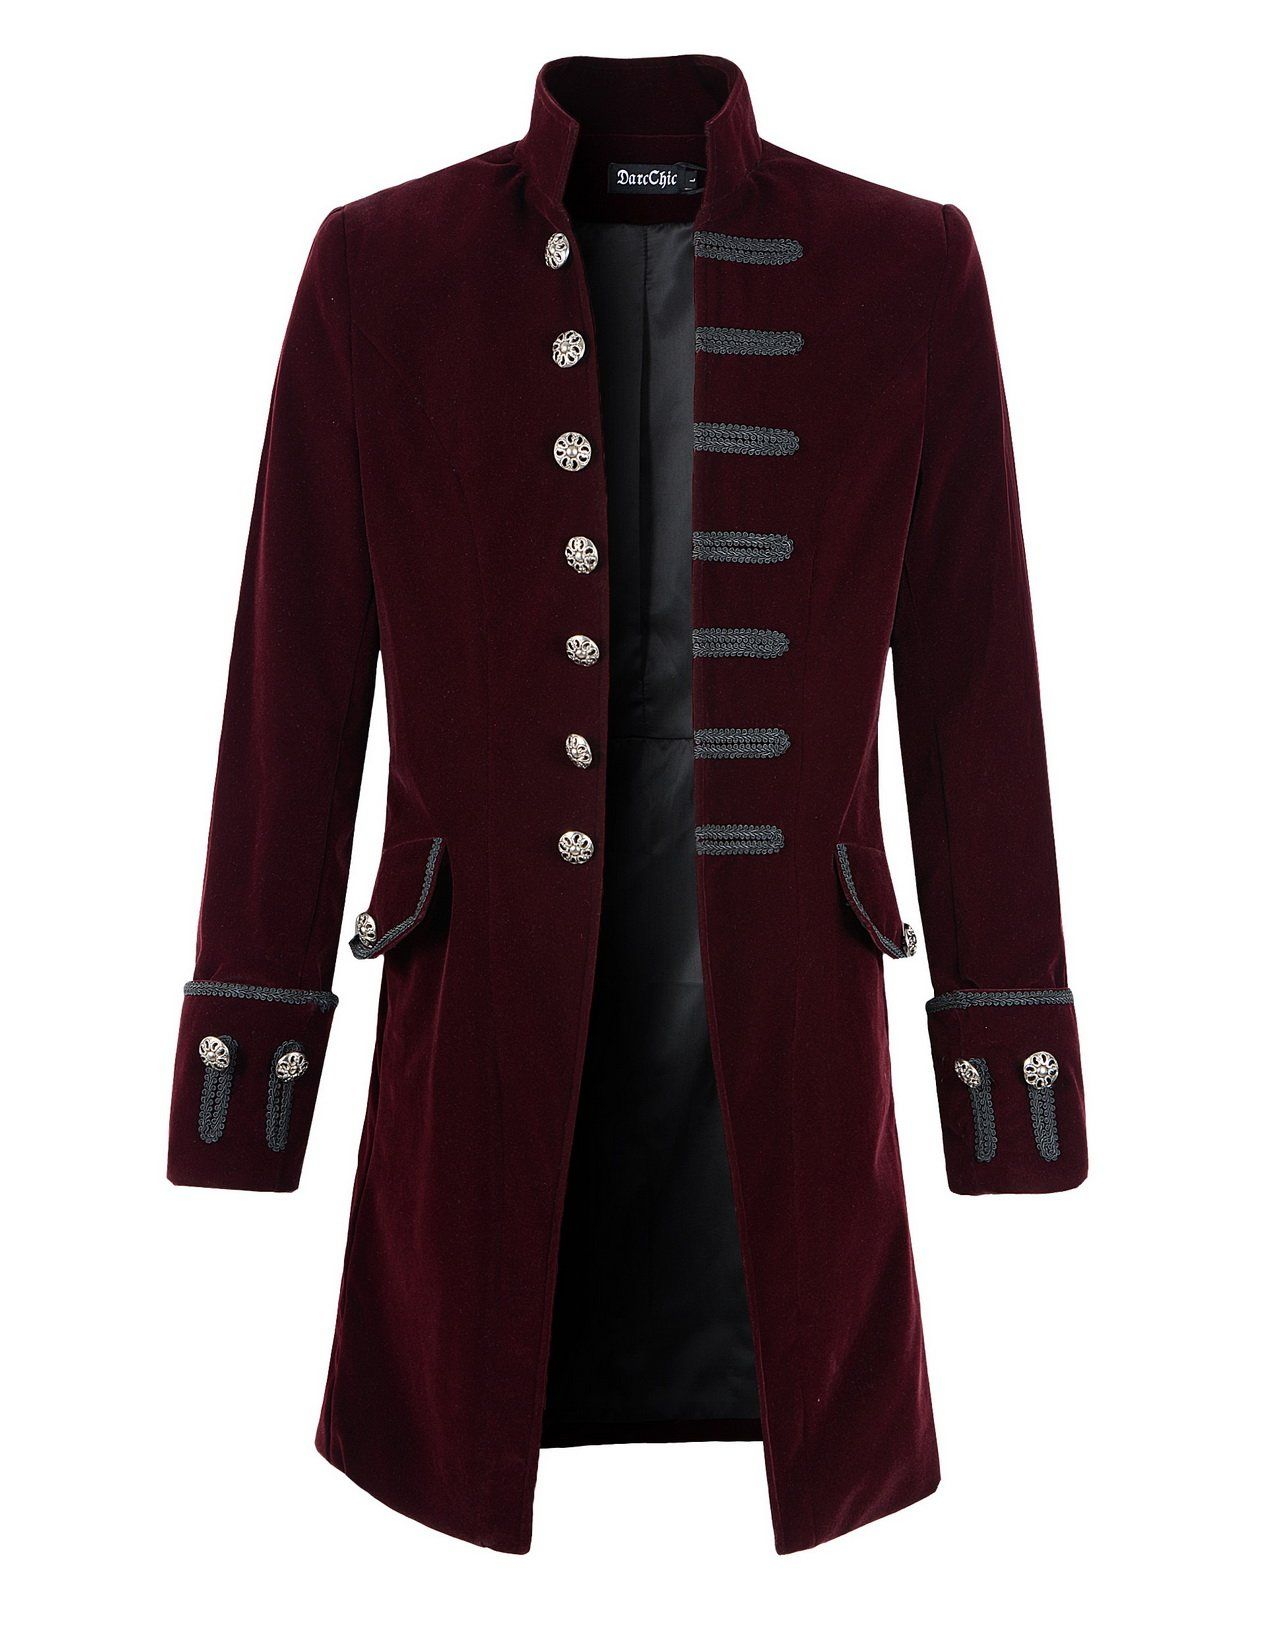 Men's Steampunk Clothing & Costumes for Sale